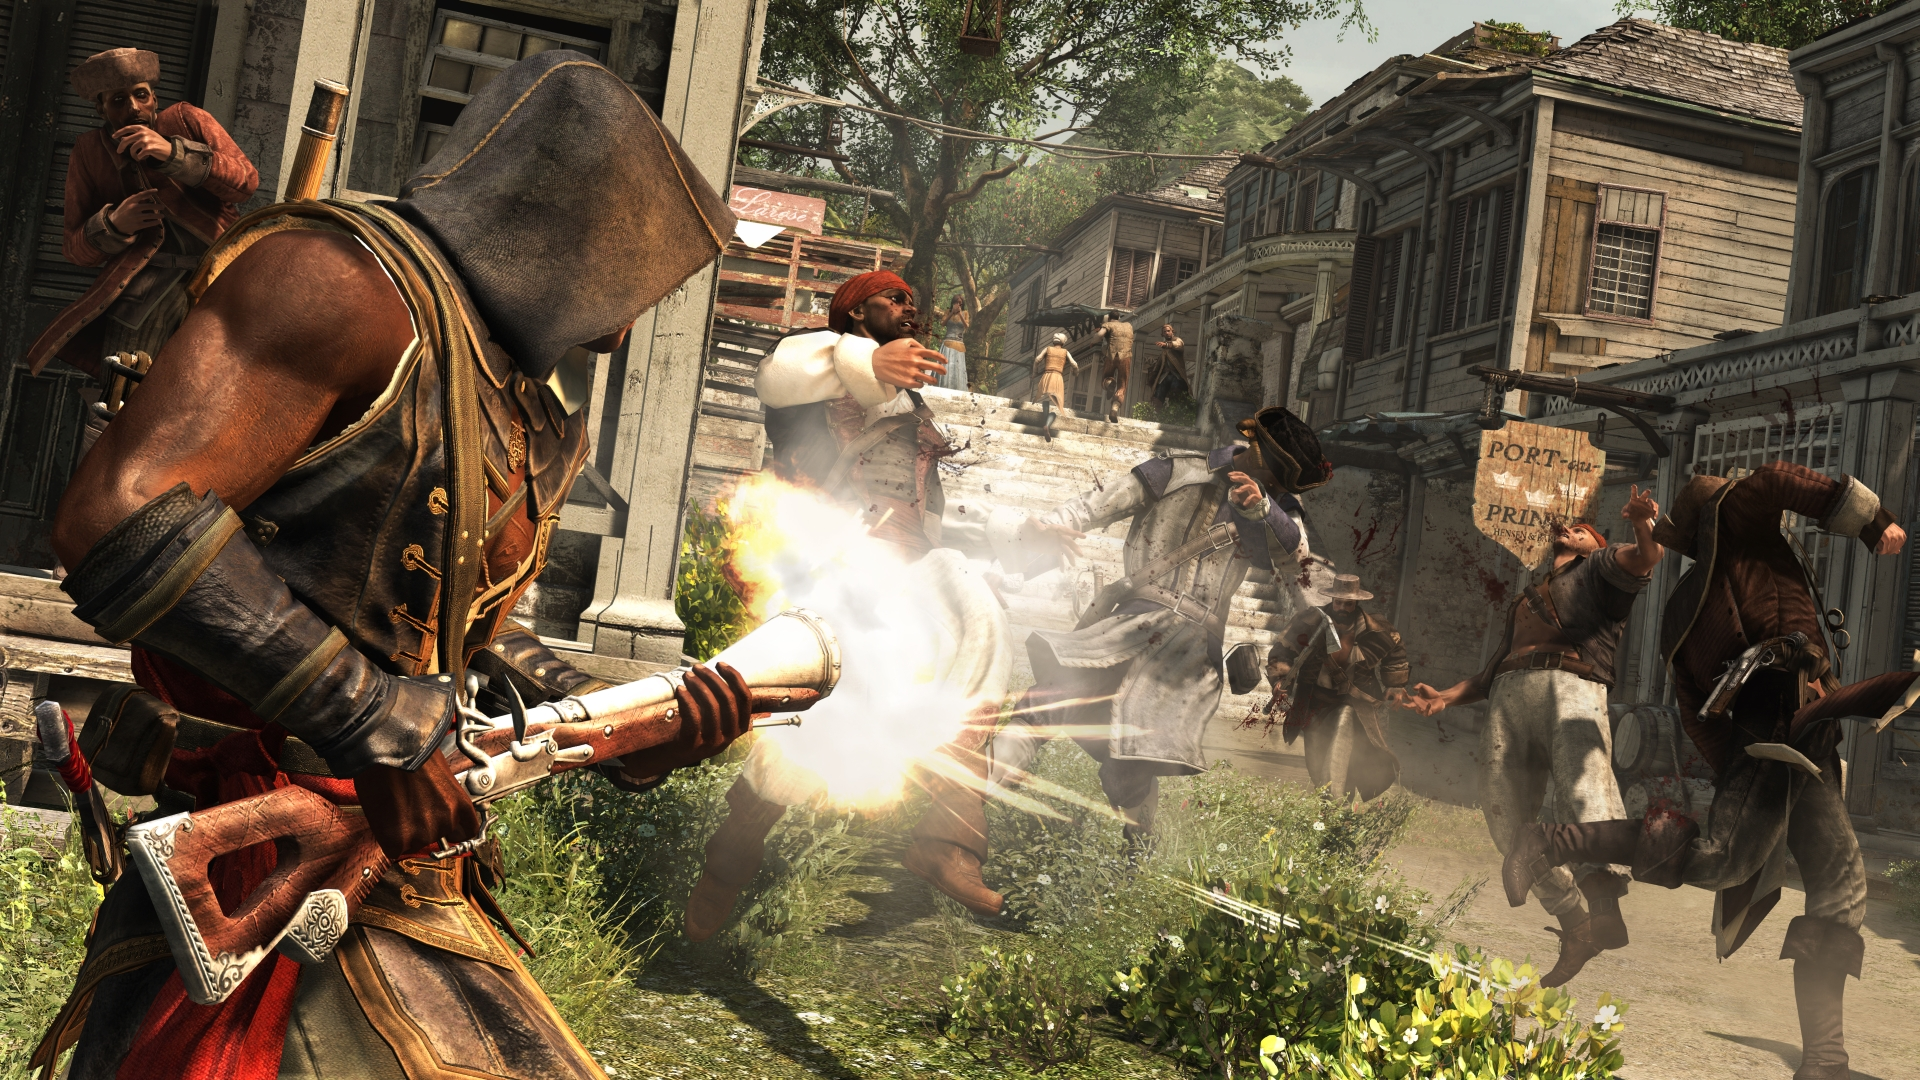 assassins_creed_iv_black_flag_freedom_cry_blunderbuss_multiple_hits